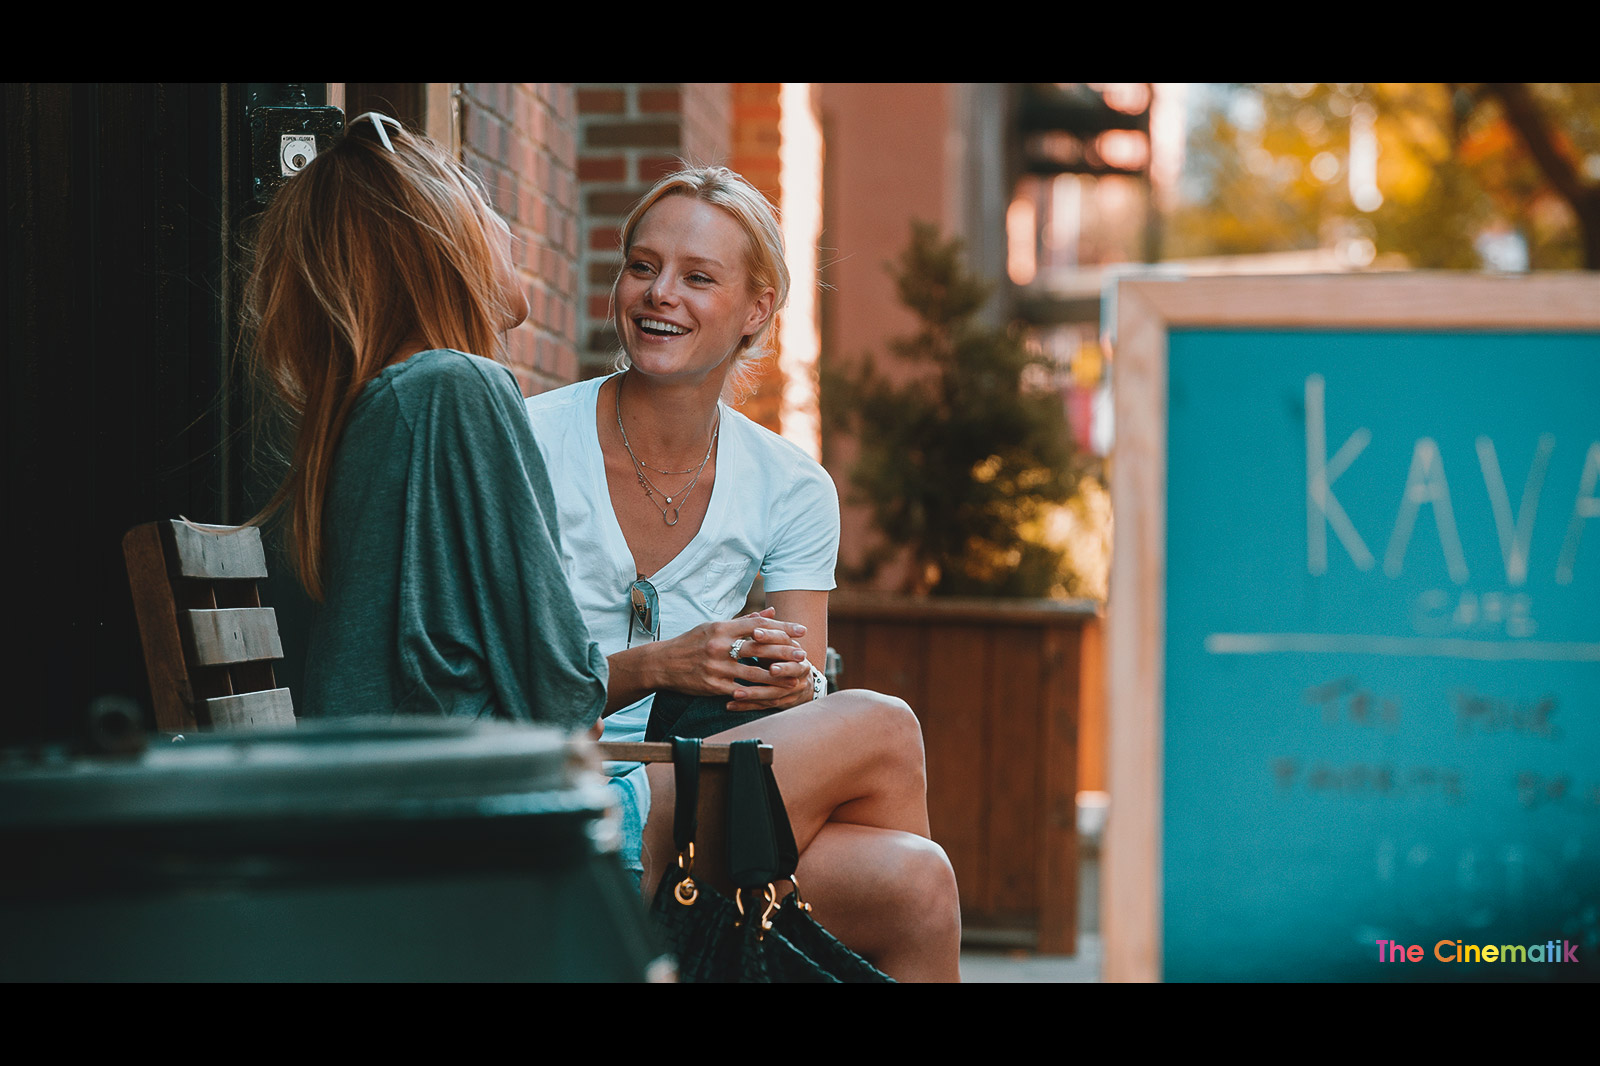 Copy of 2 models chatting smiling at coffee terrace in Greenwich village New York Cinematic photography by Kamal Lahmadi / The Cinematik